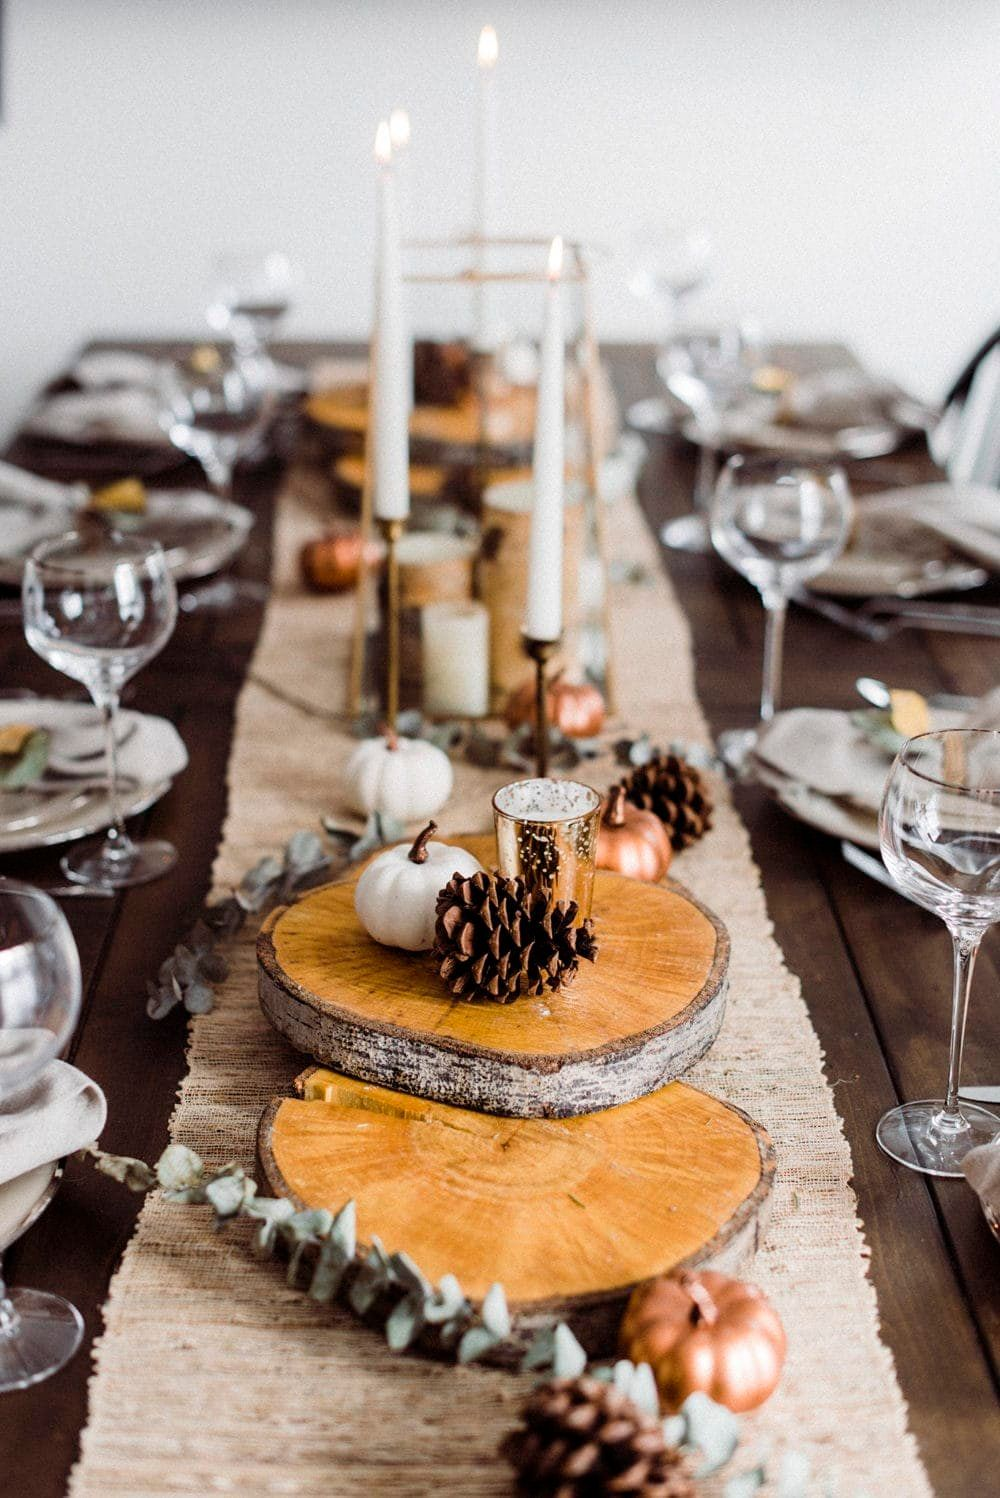 35 Thanksgiving Table Centerpieces That Are Seriously Gorgeous In 2020 Thanksgiving Table Centerpieces Thanksgiving Decorations Diy Rustic Thanksgiving